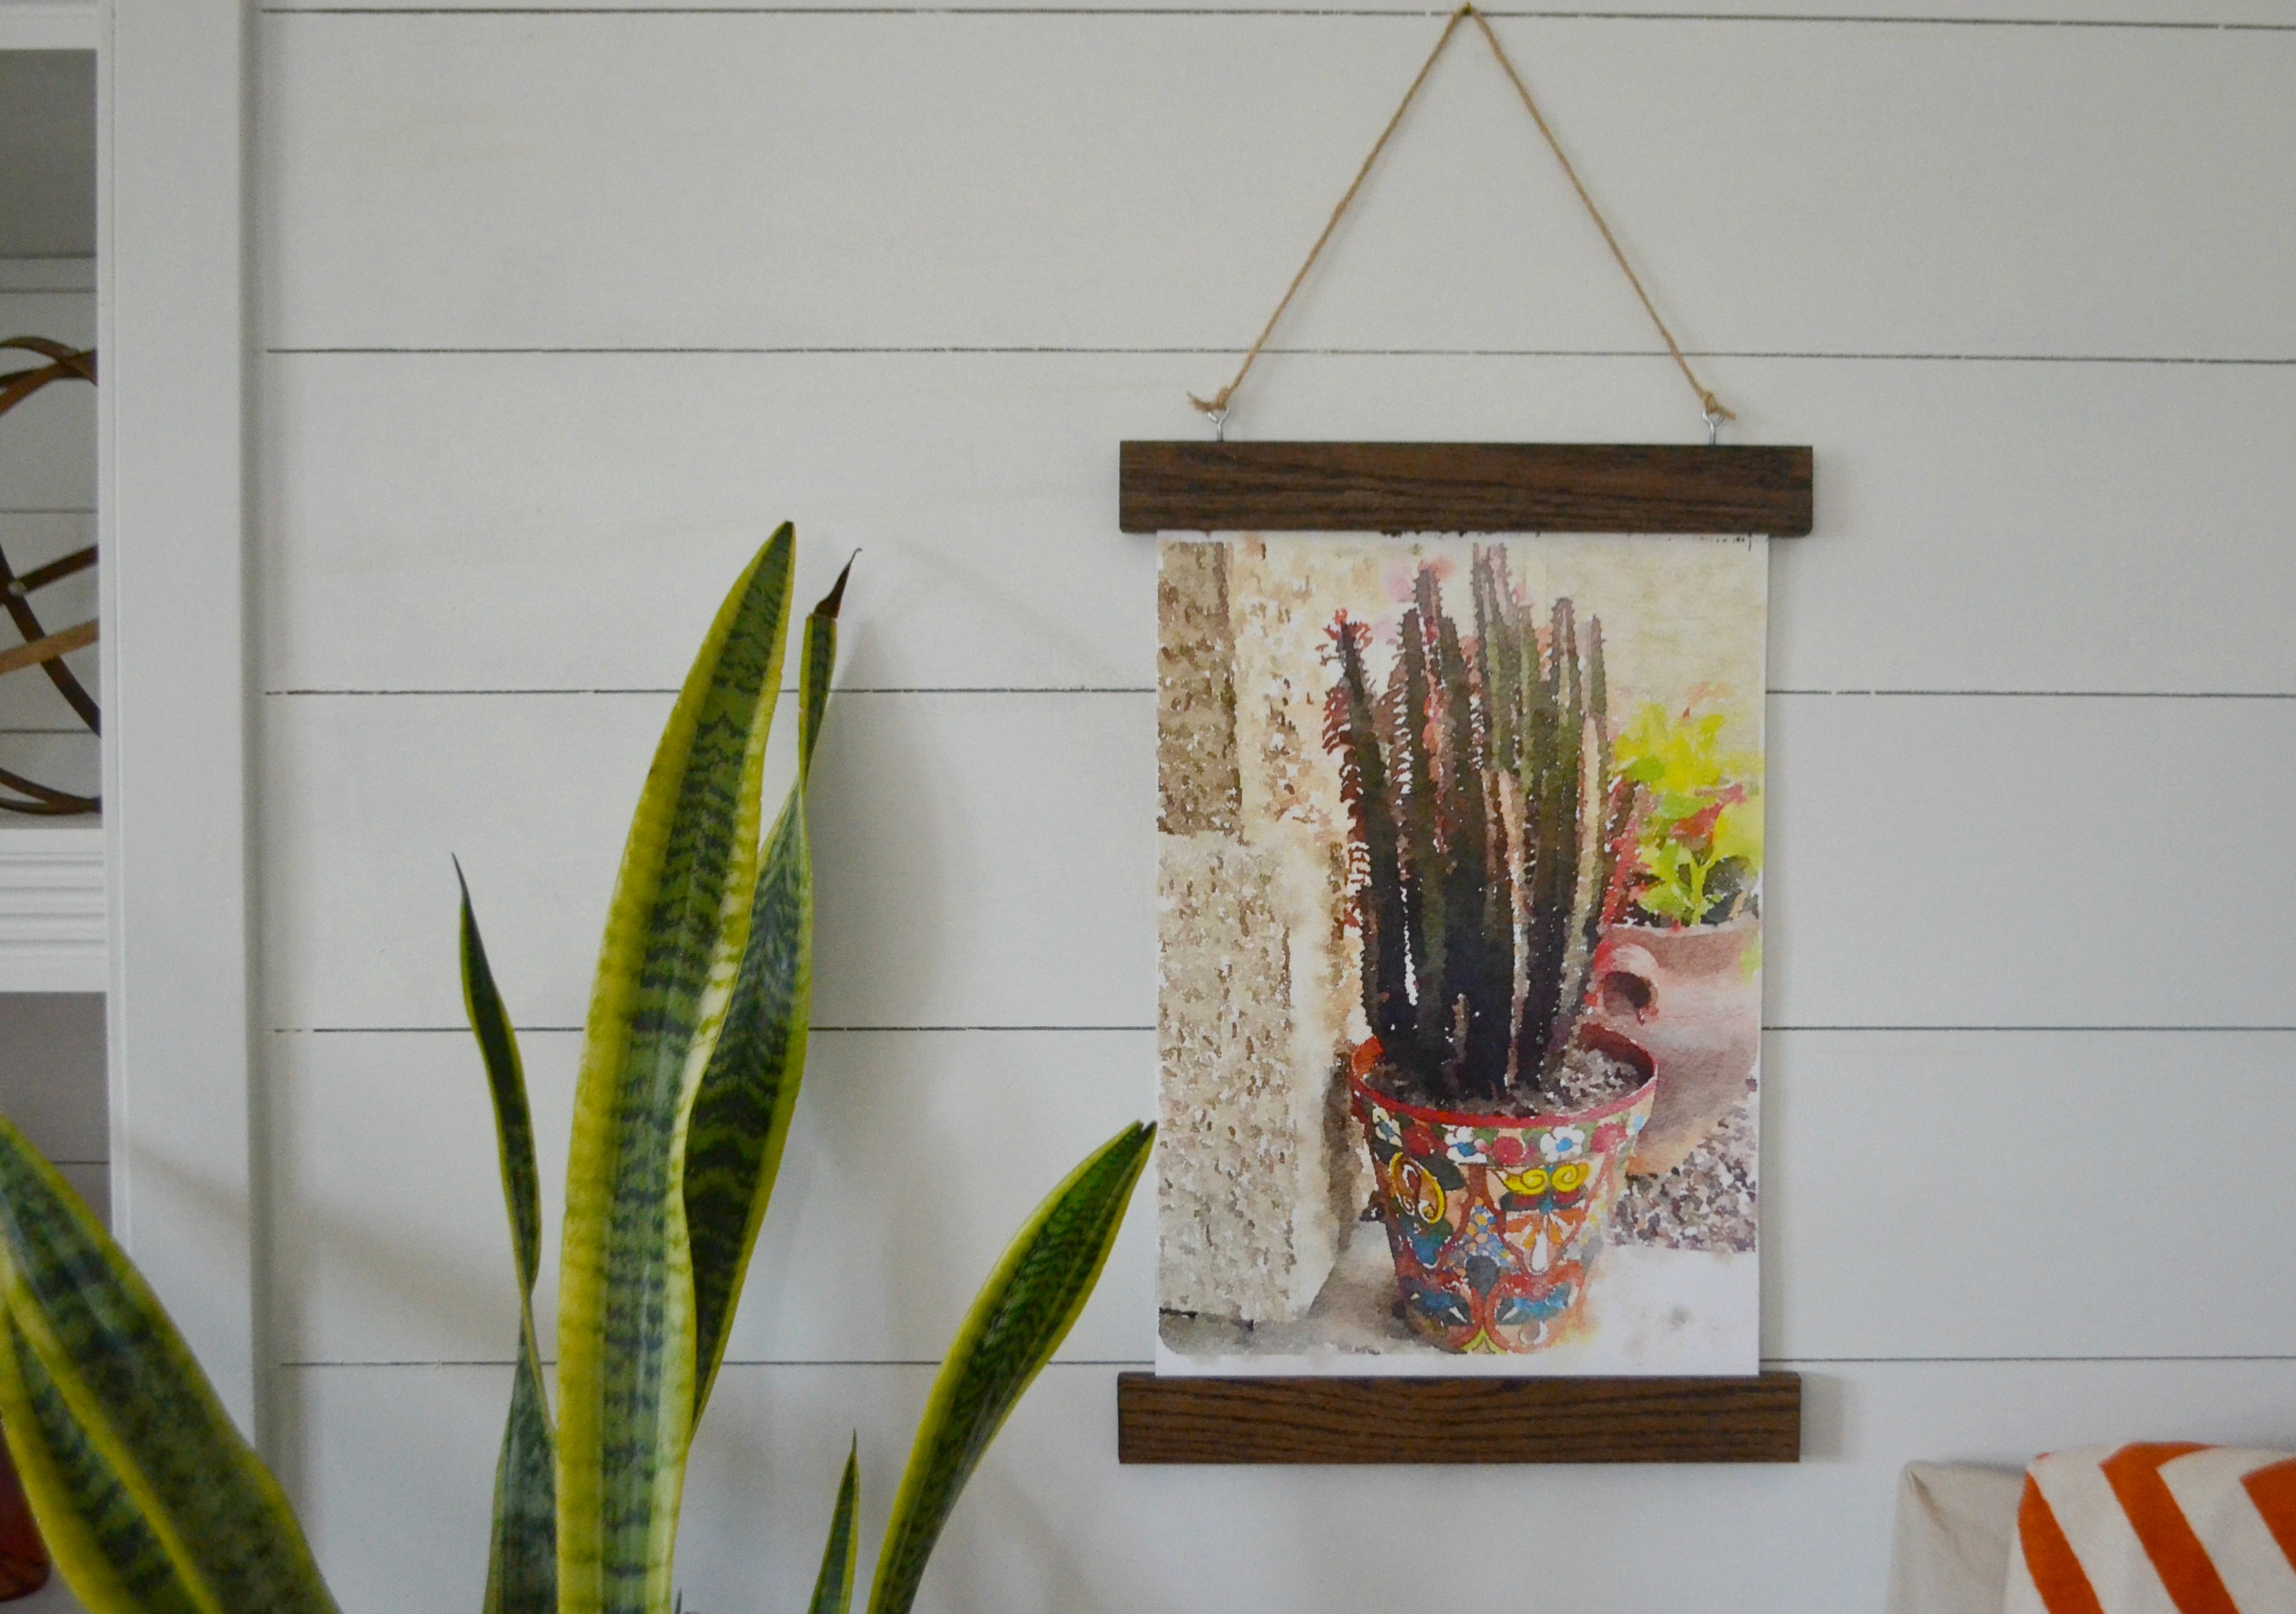 This art piece looks amazing against my shiplap wall!